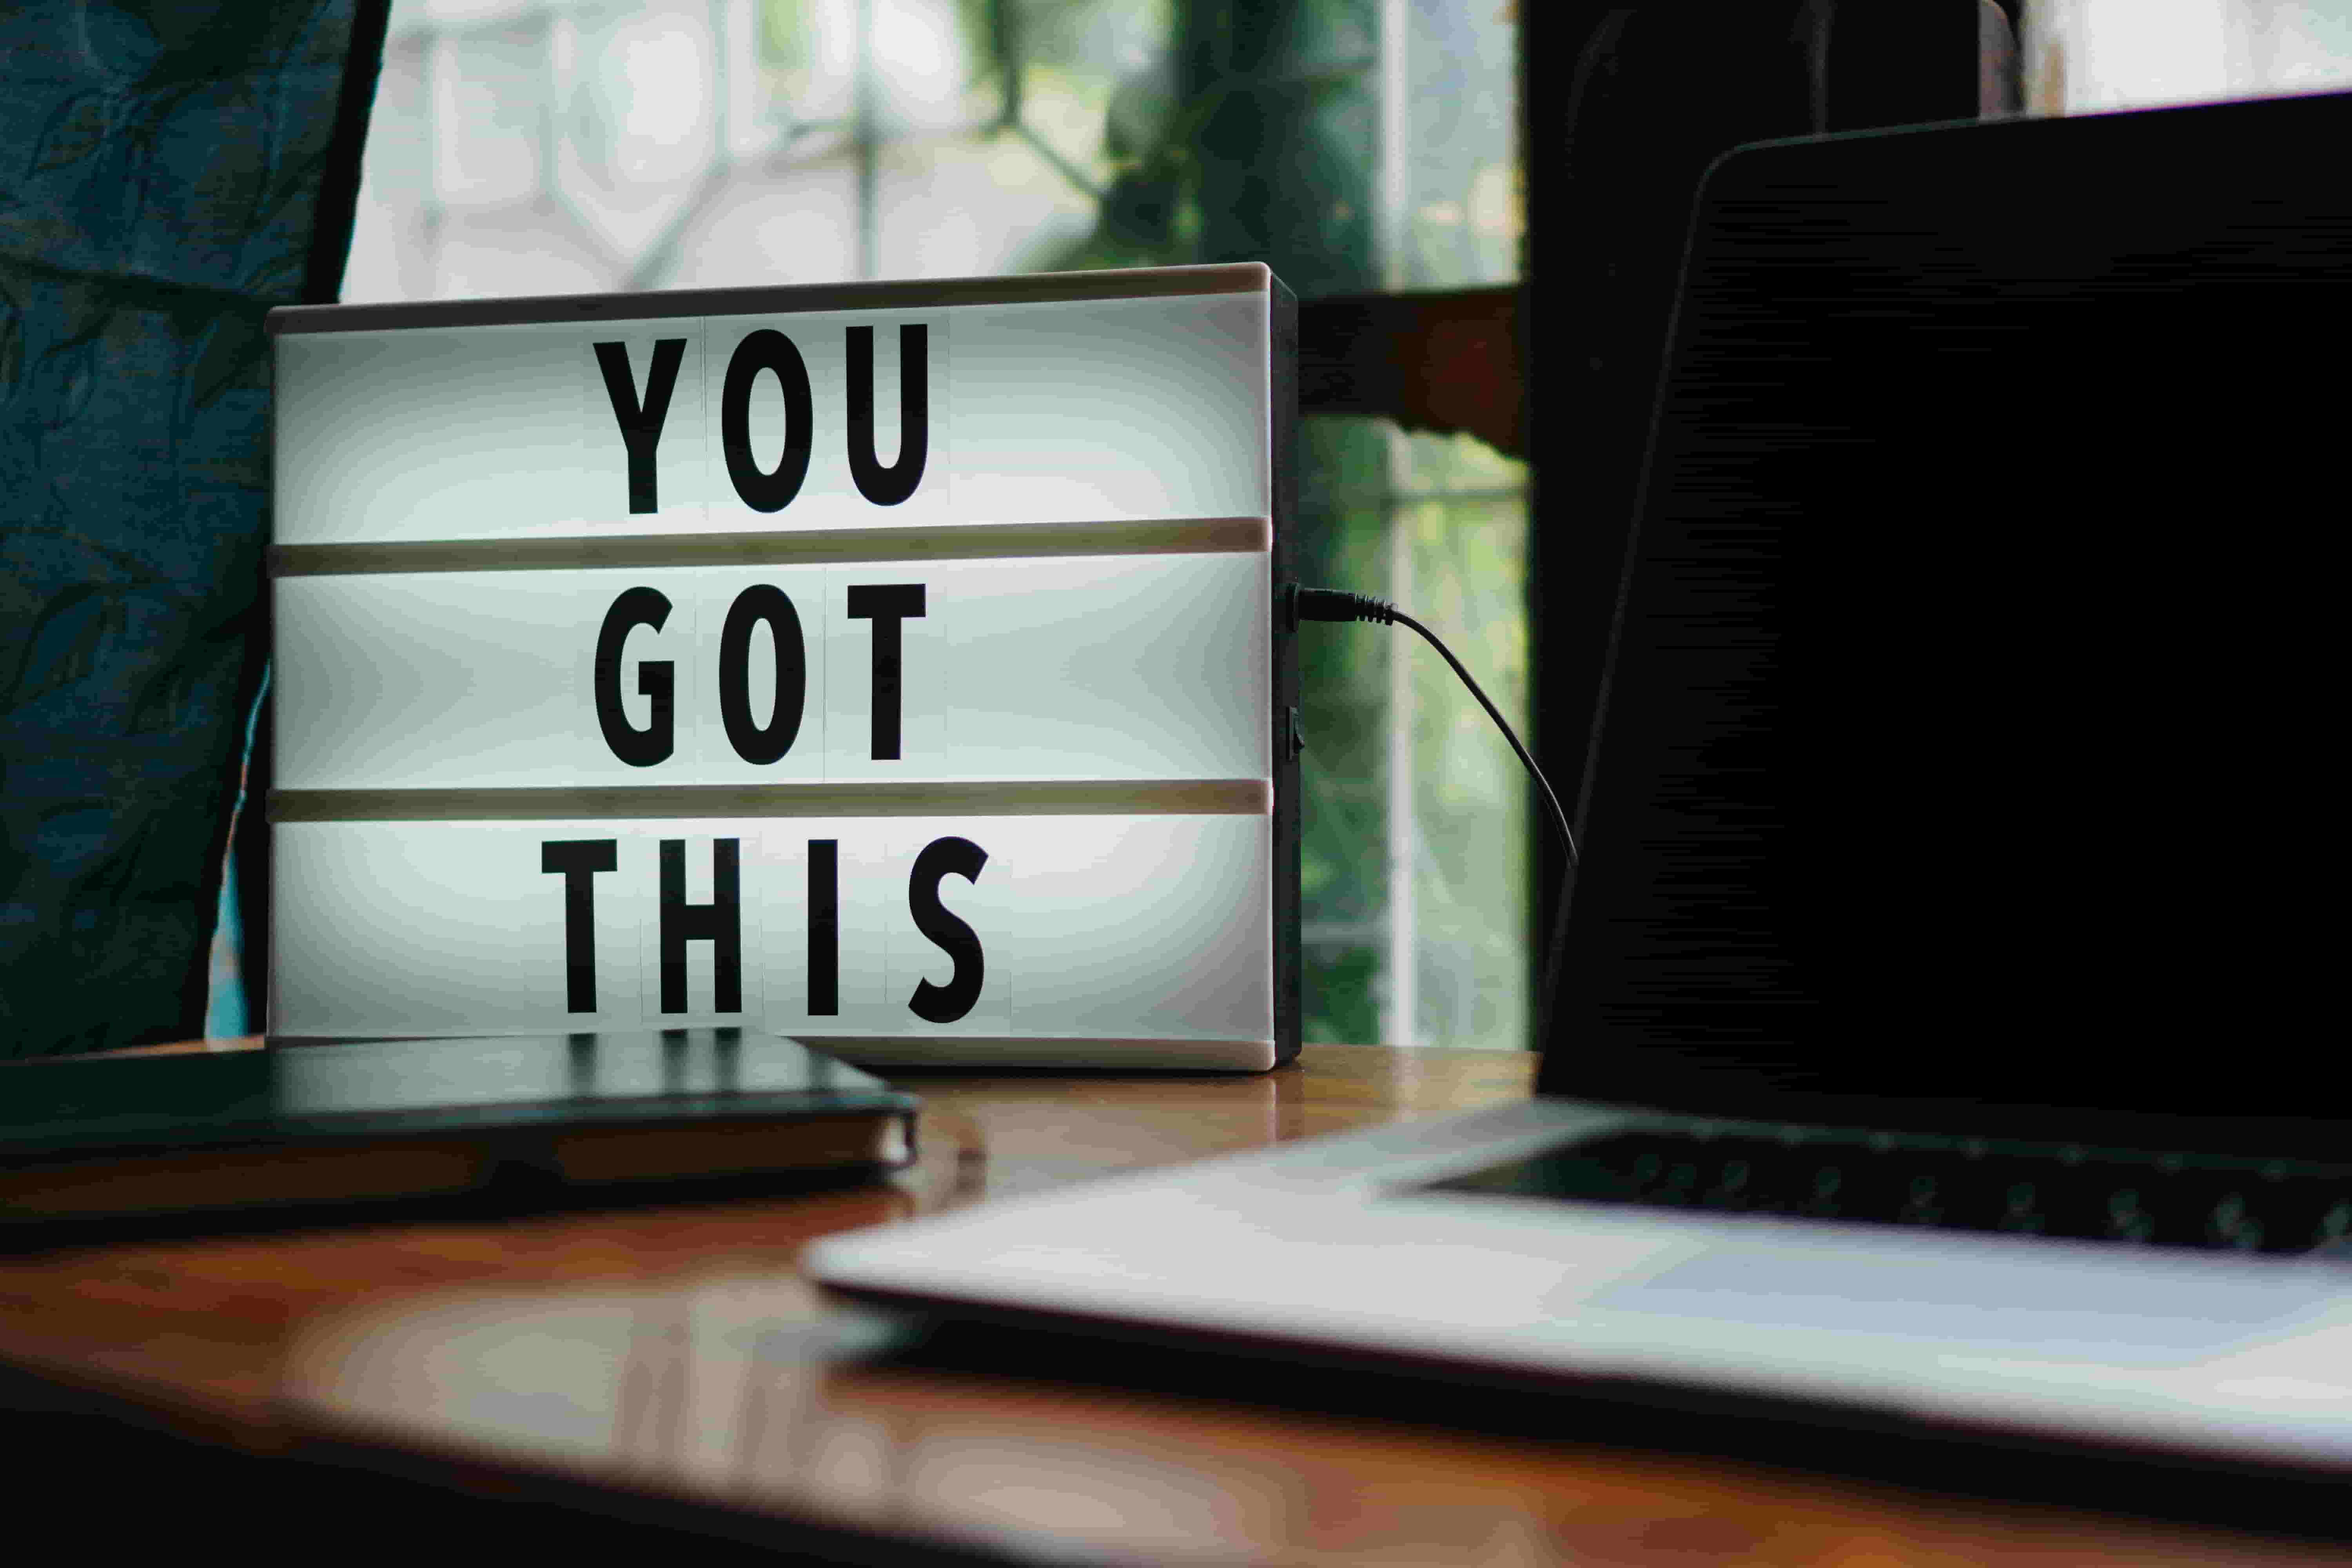 The words 'You Got This' are displayed on a light box next to a laptop